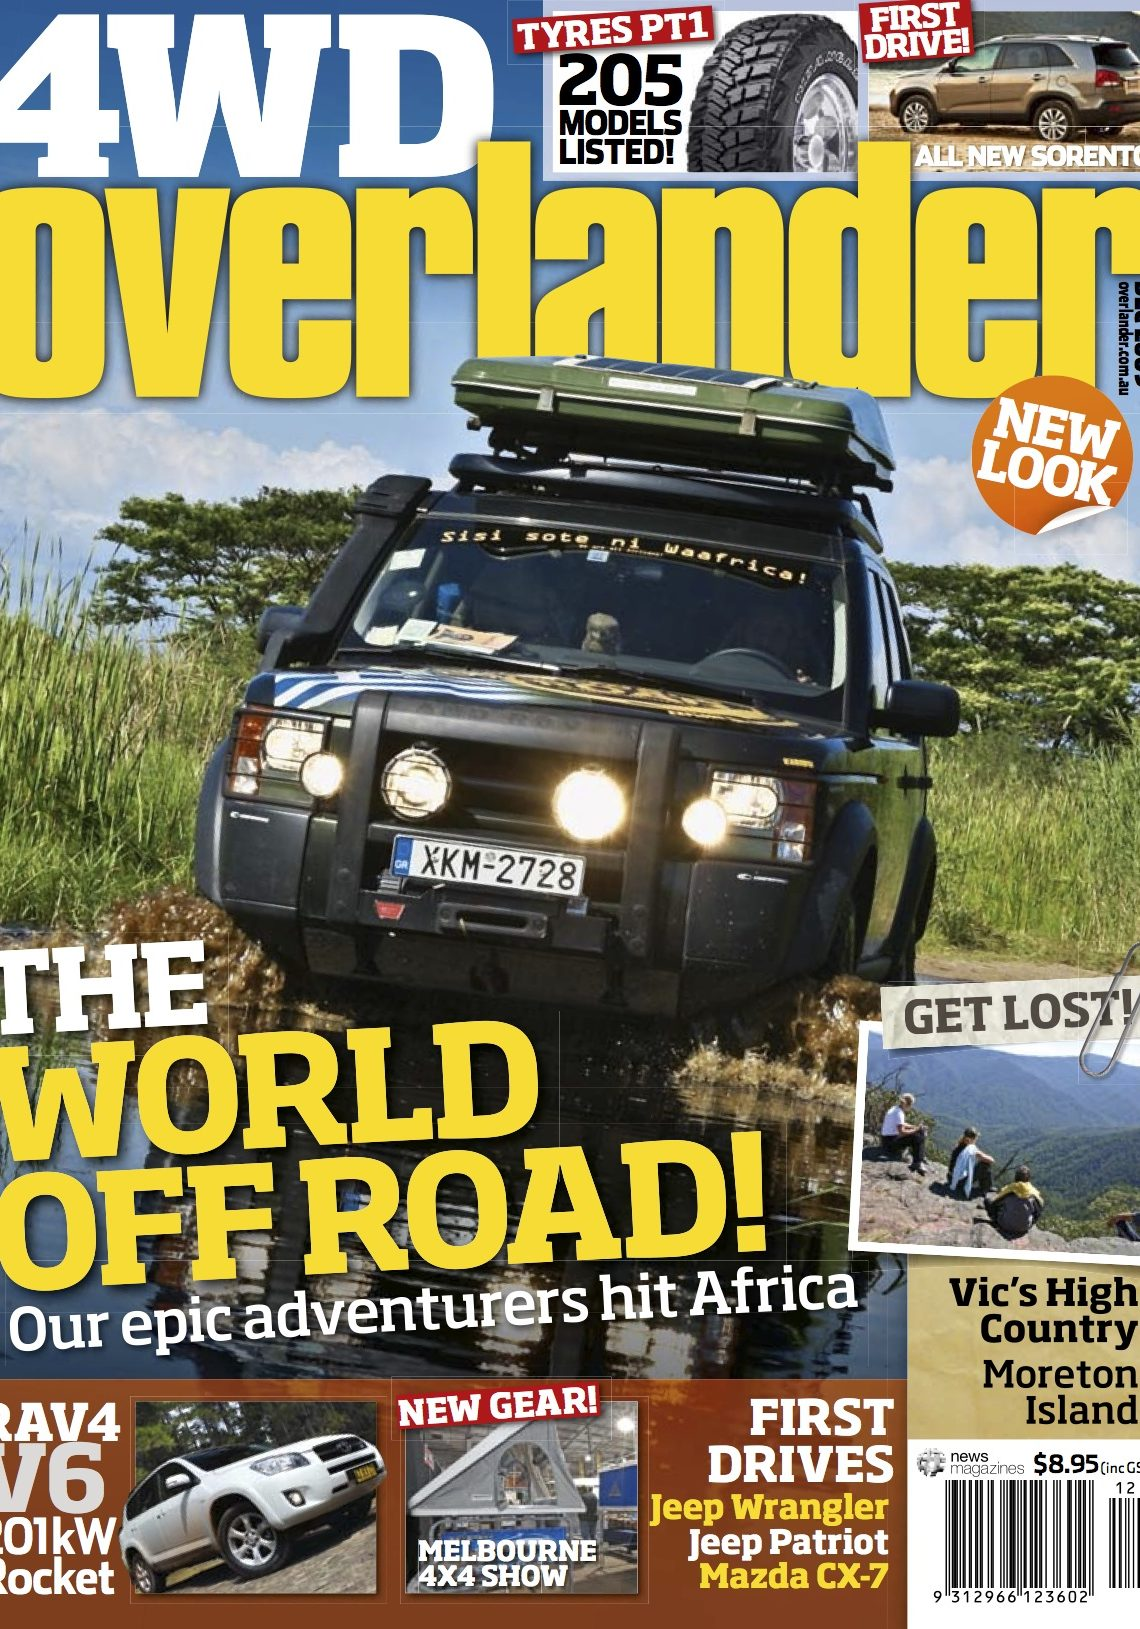 The front page of the Overlander 4WD magazine, December 2009 issue